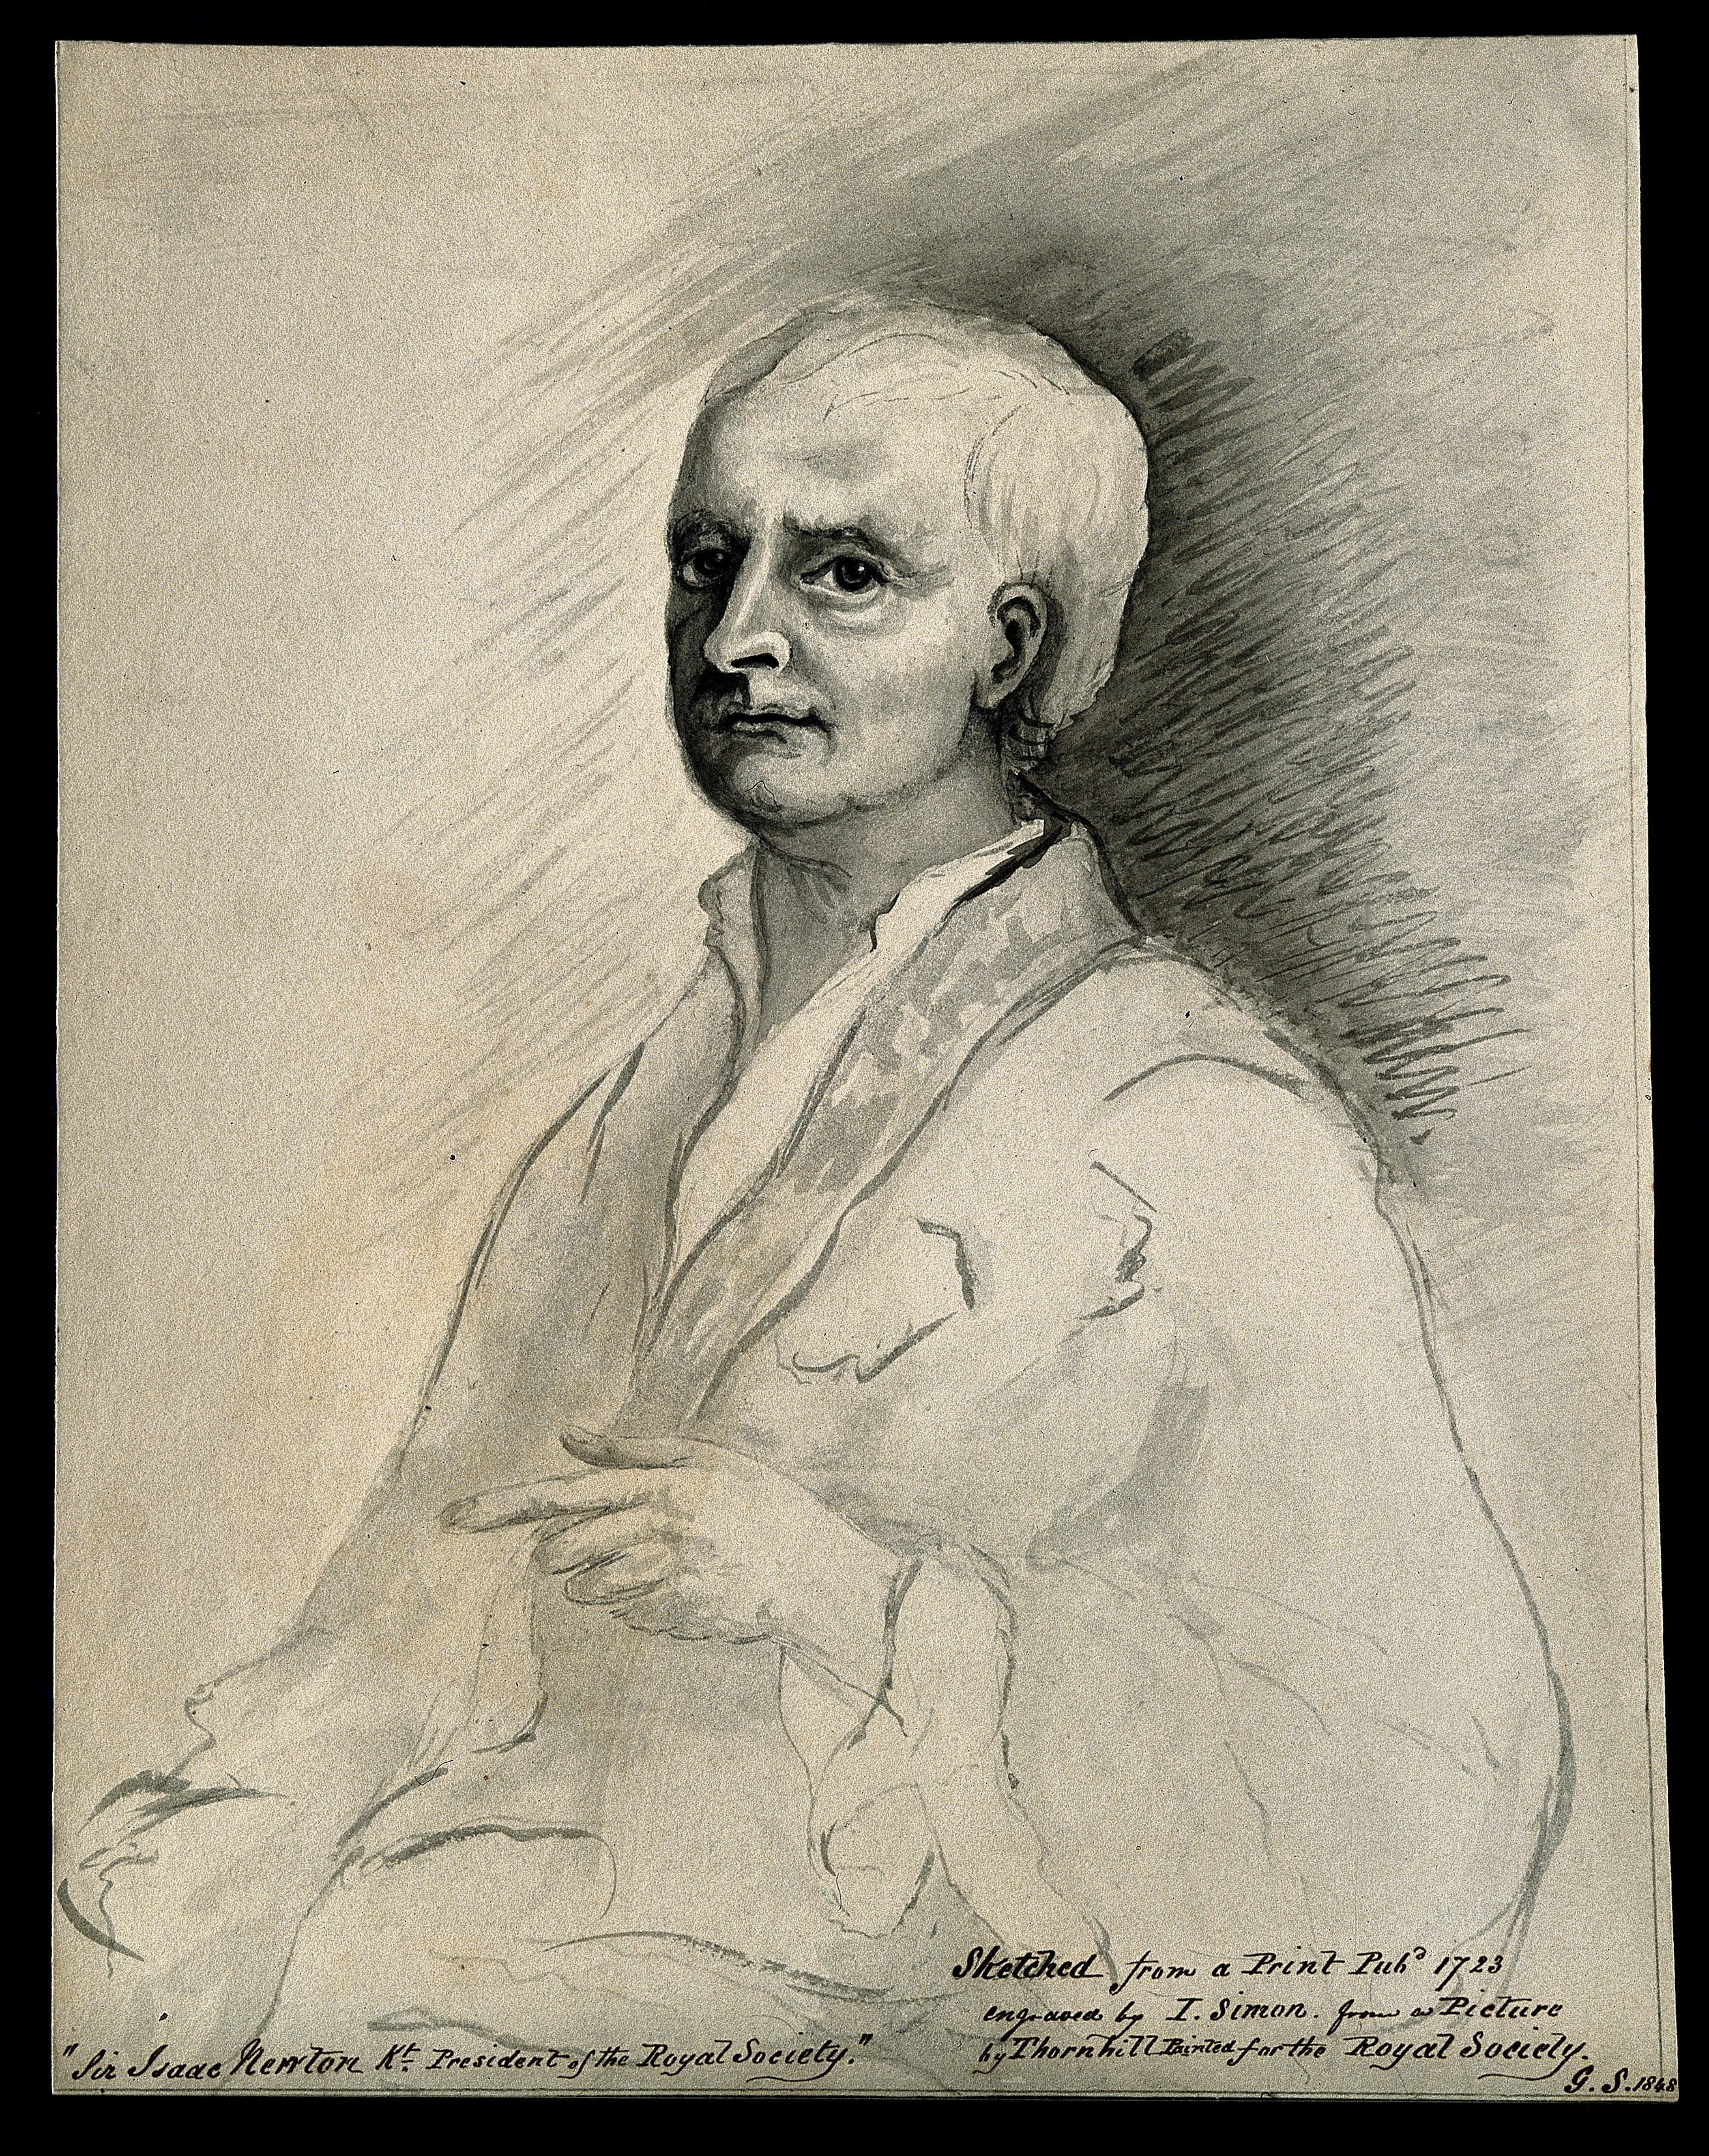 2622x3307 Filesir Isaac Newton. Wash Drawing By (G. S.), 1848, After J. Si